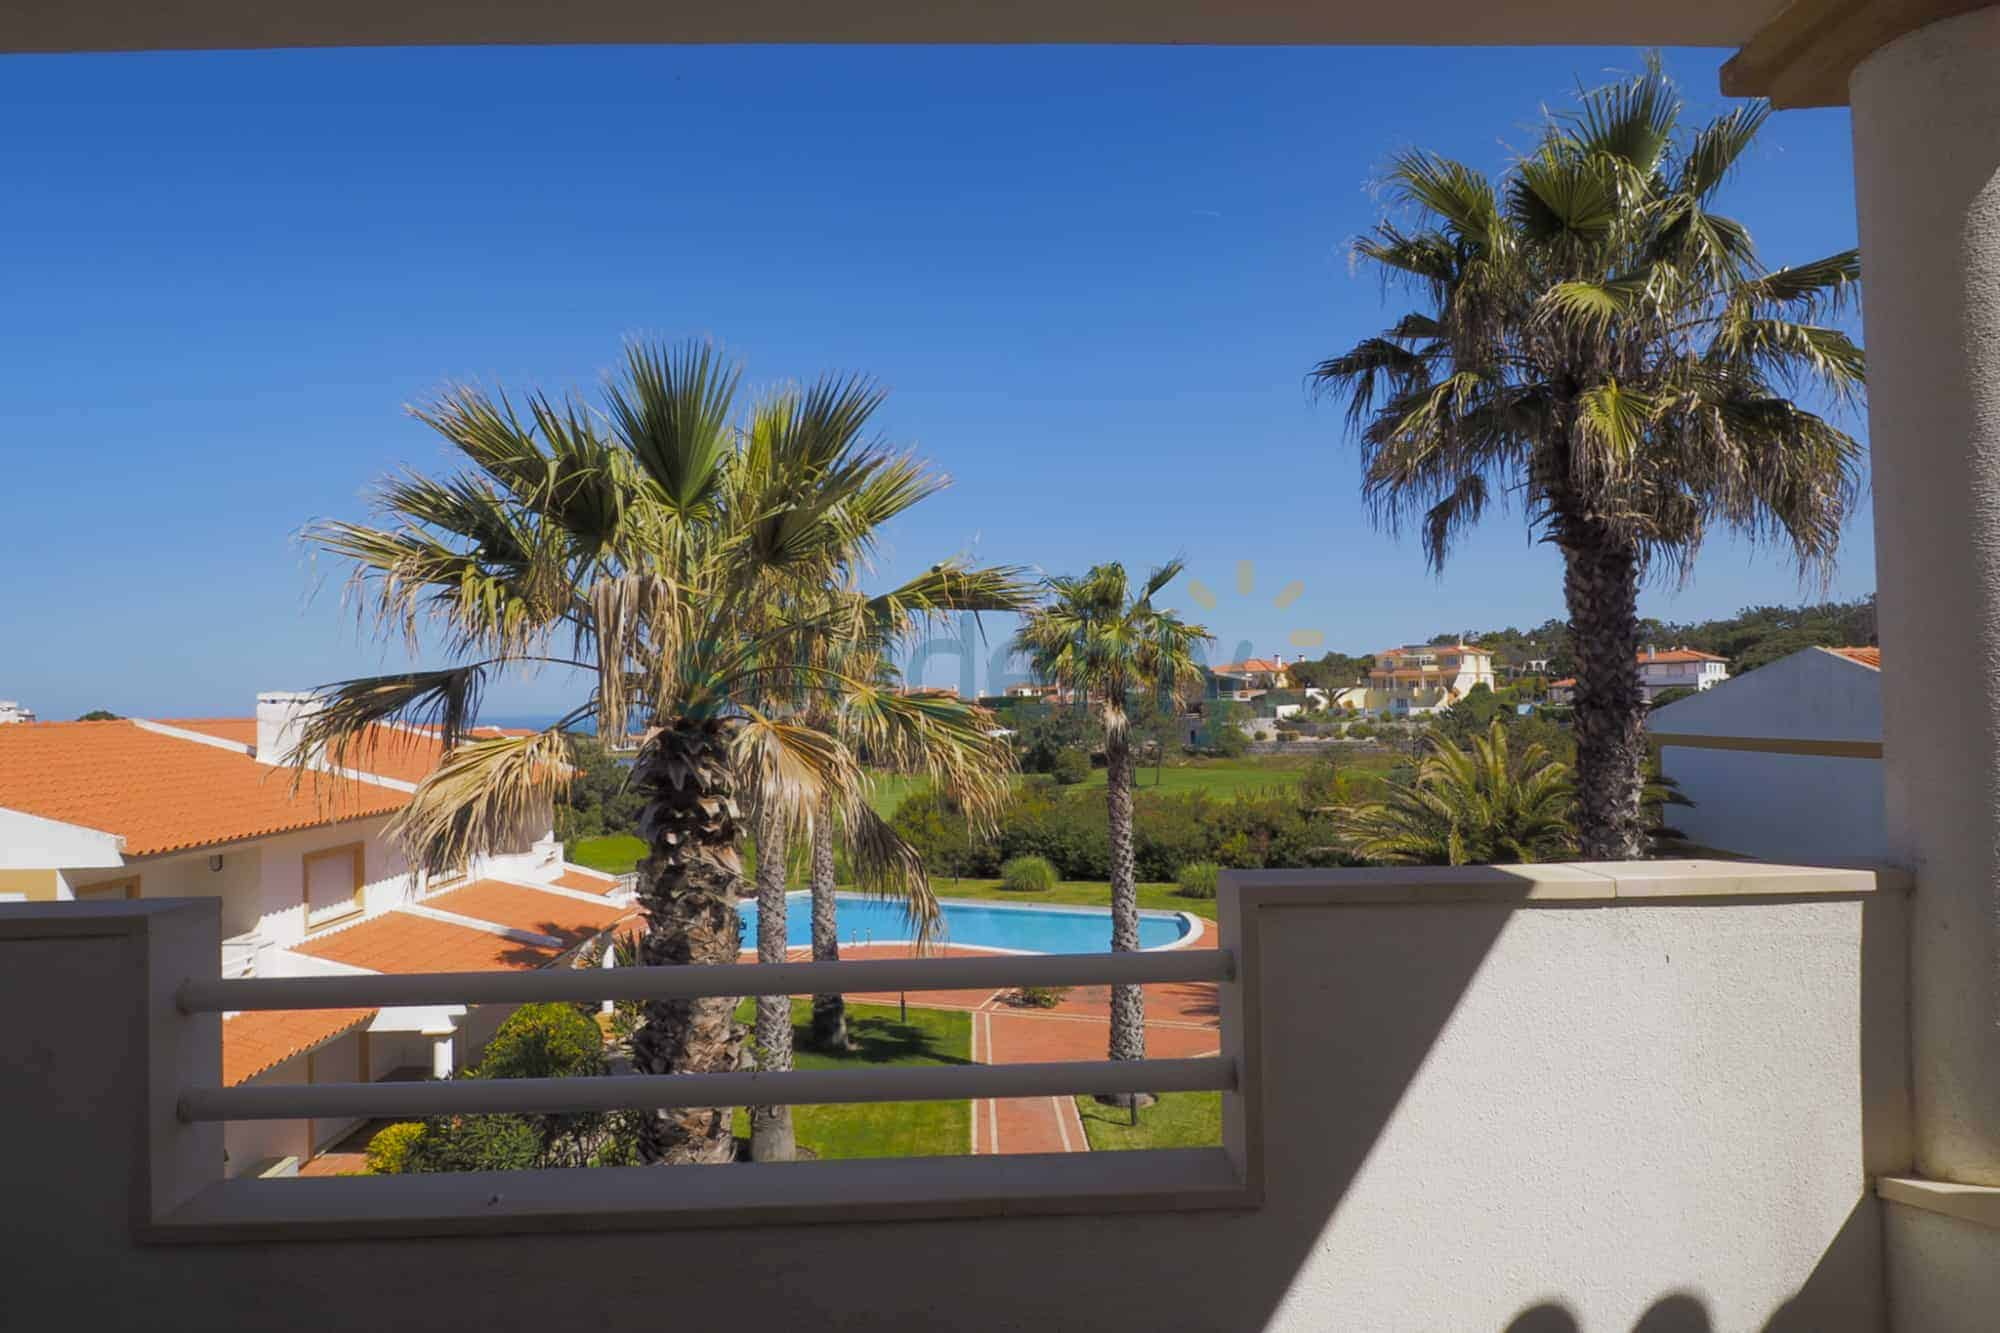 Holiday Rentals in Praia D'El Rey 279